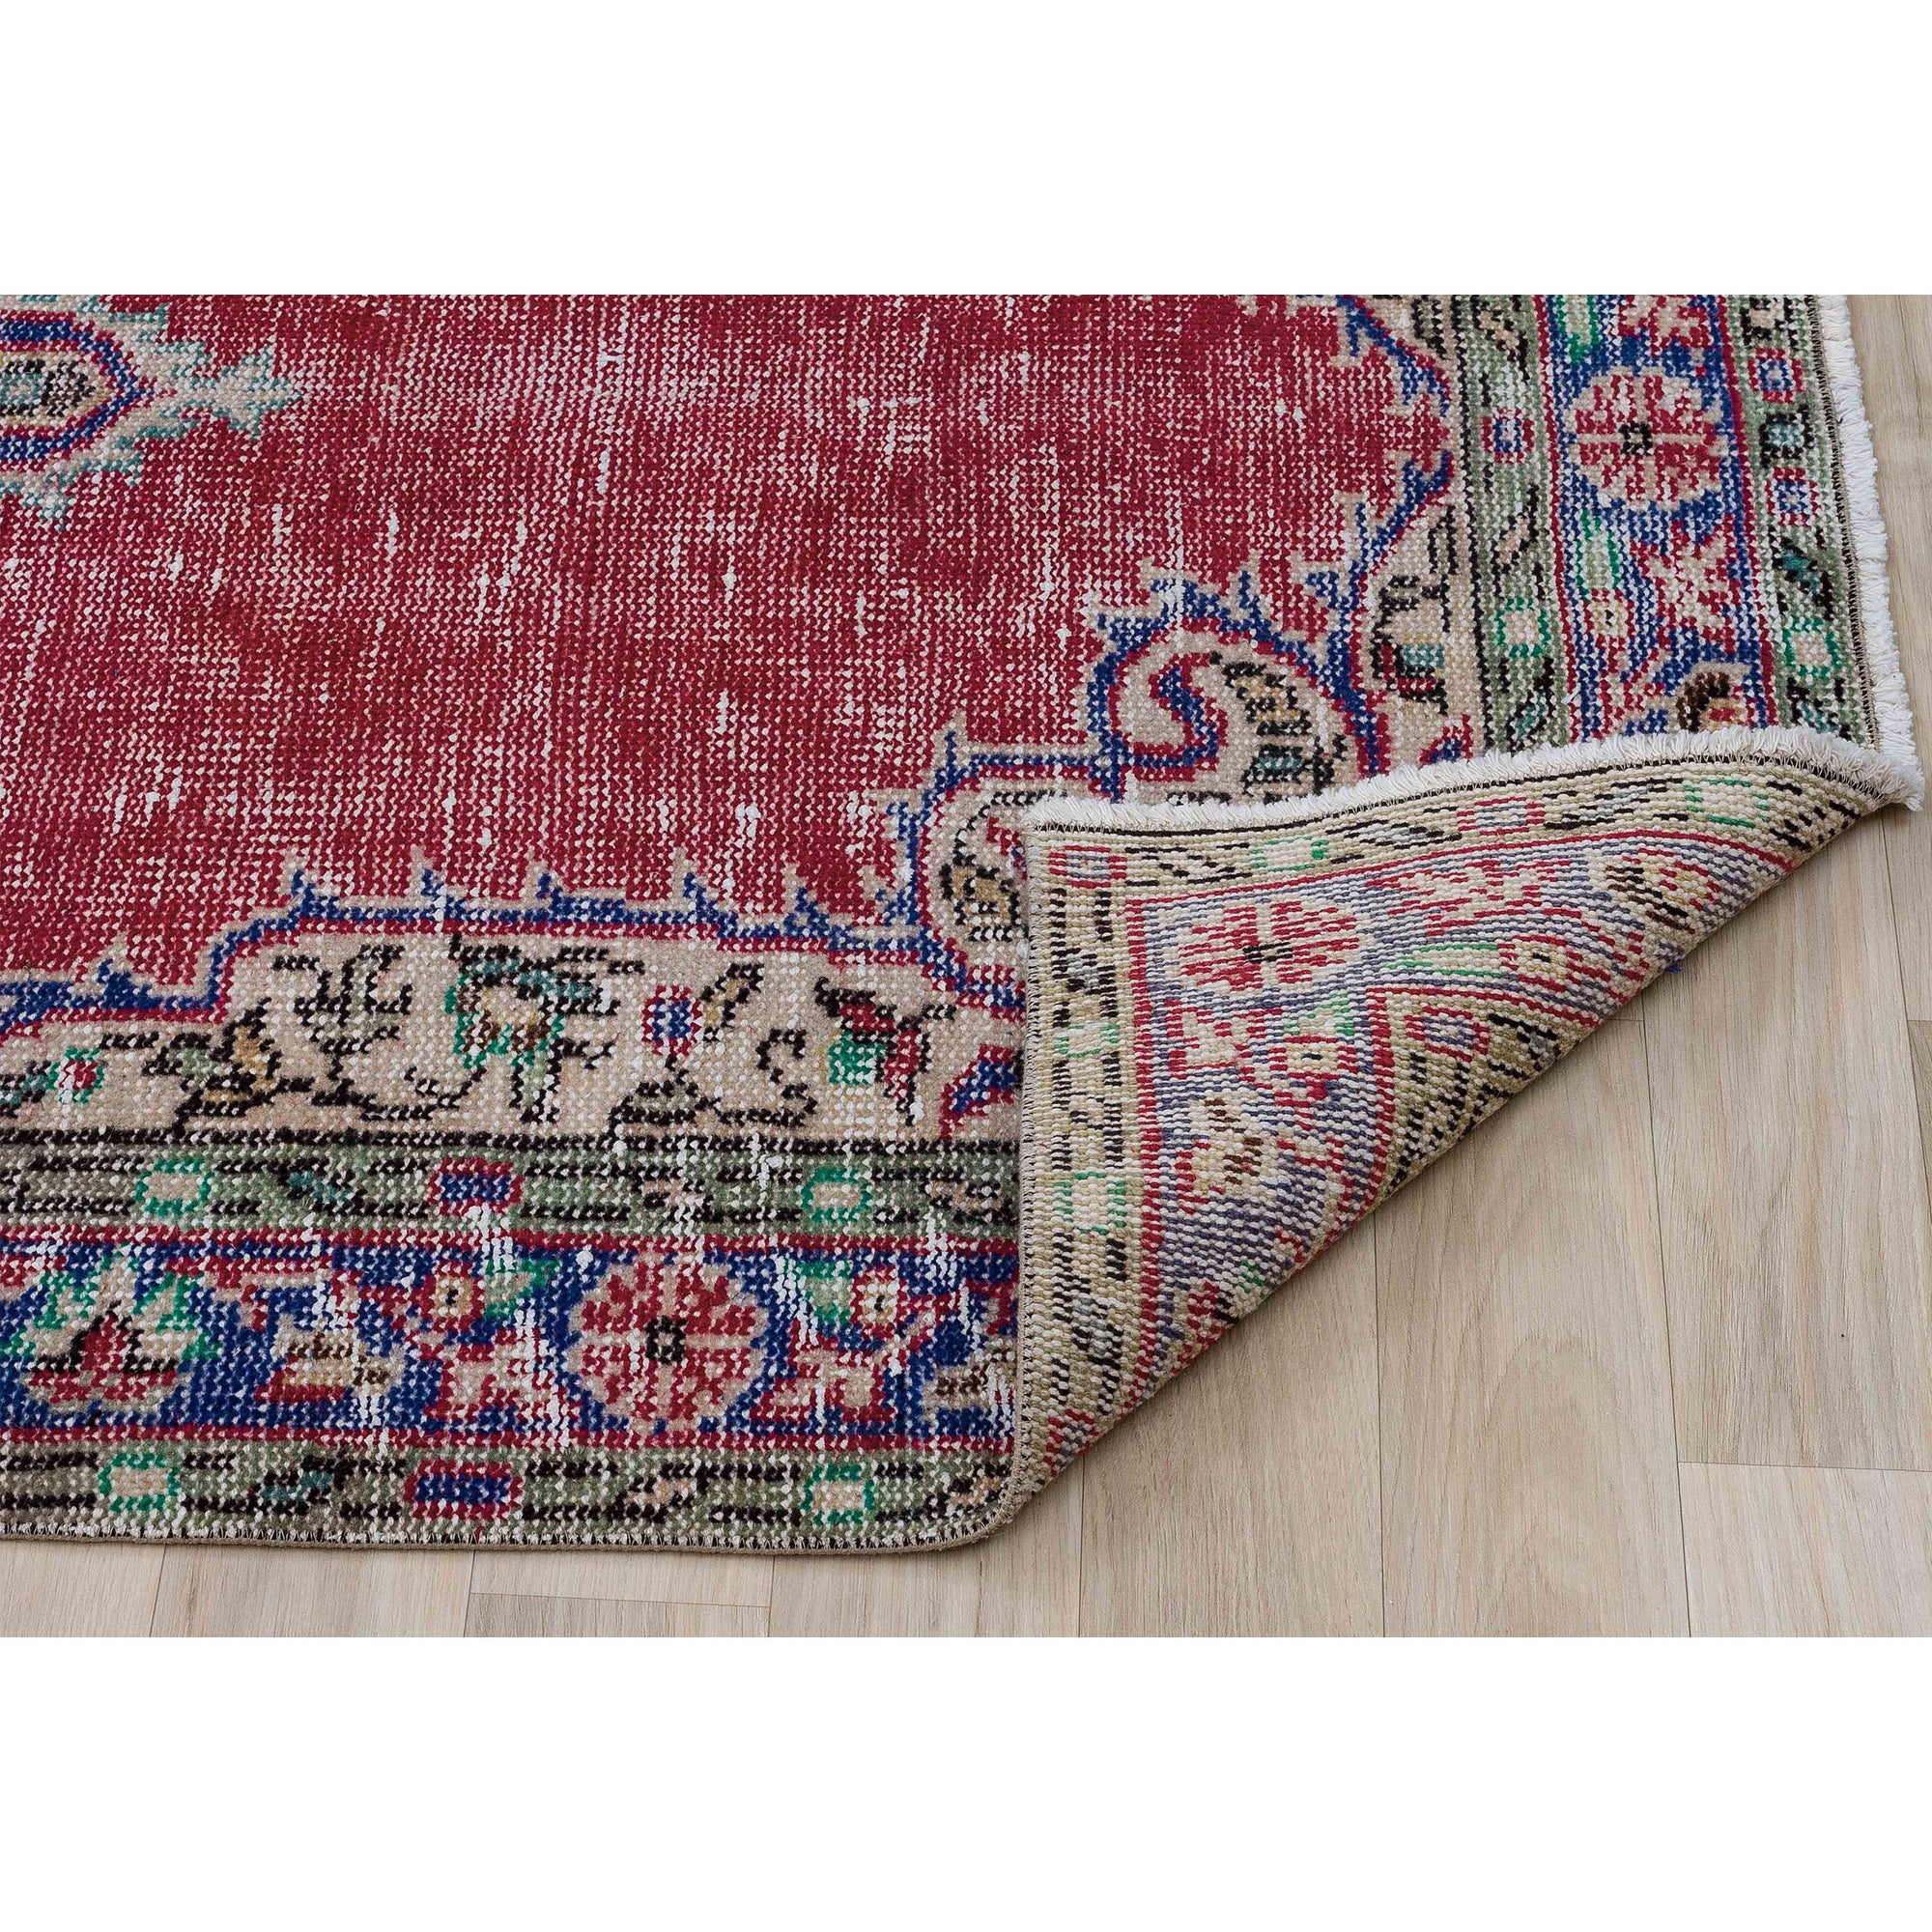 114 X 199 Anatolian Hand Knotted Carpet Vintage Style 60N2698 -  114 × 199 سجادة أناضولية معقودة يدويًا - Shop Online Furniture and Home Decor Store in Dubai, UAE at ebarza